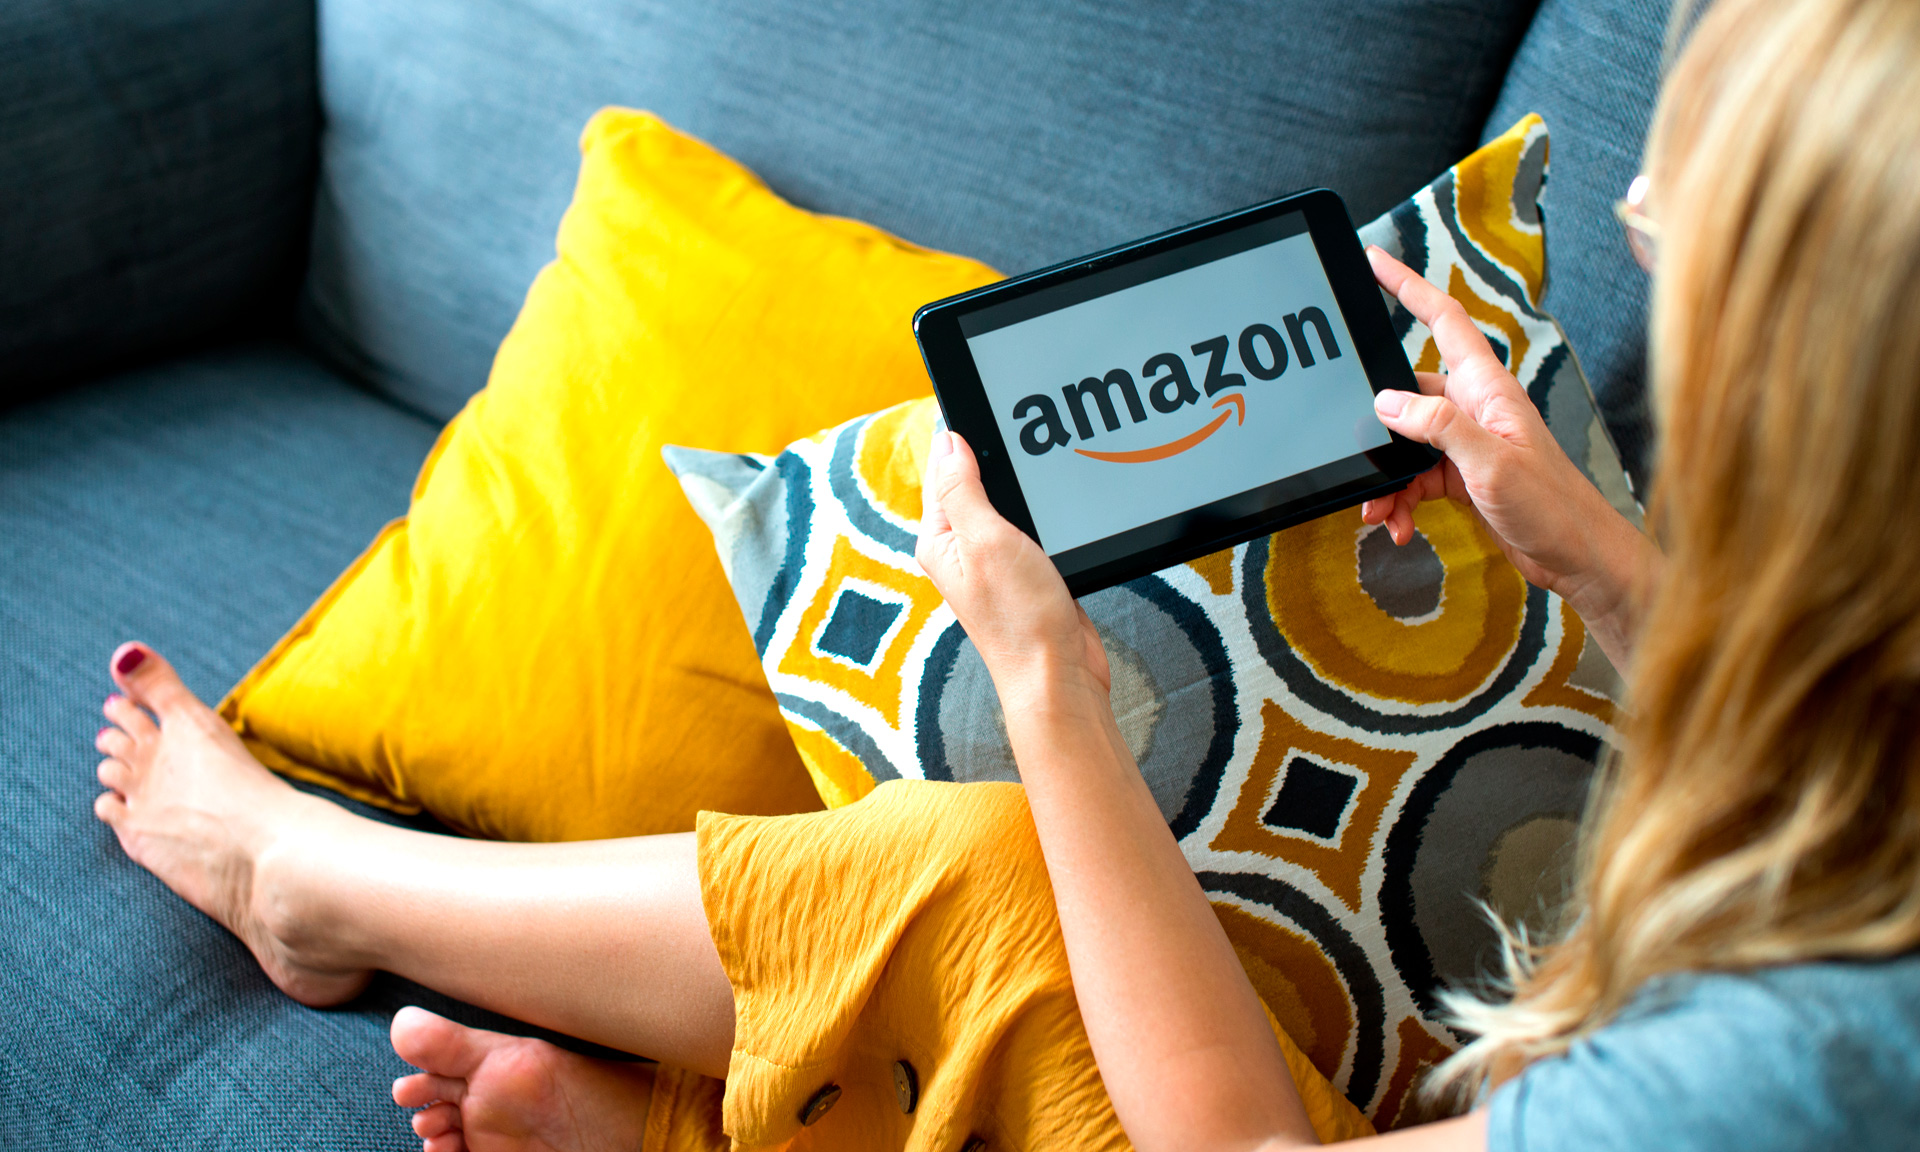 Amazon Besteller reviews mentioning 'bribe' or 'incentivisation' – Which? News